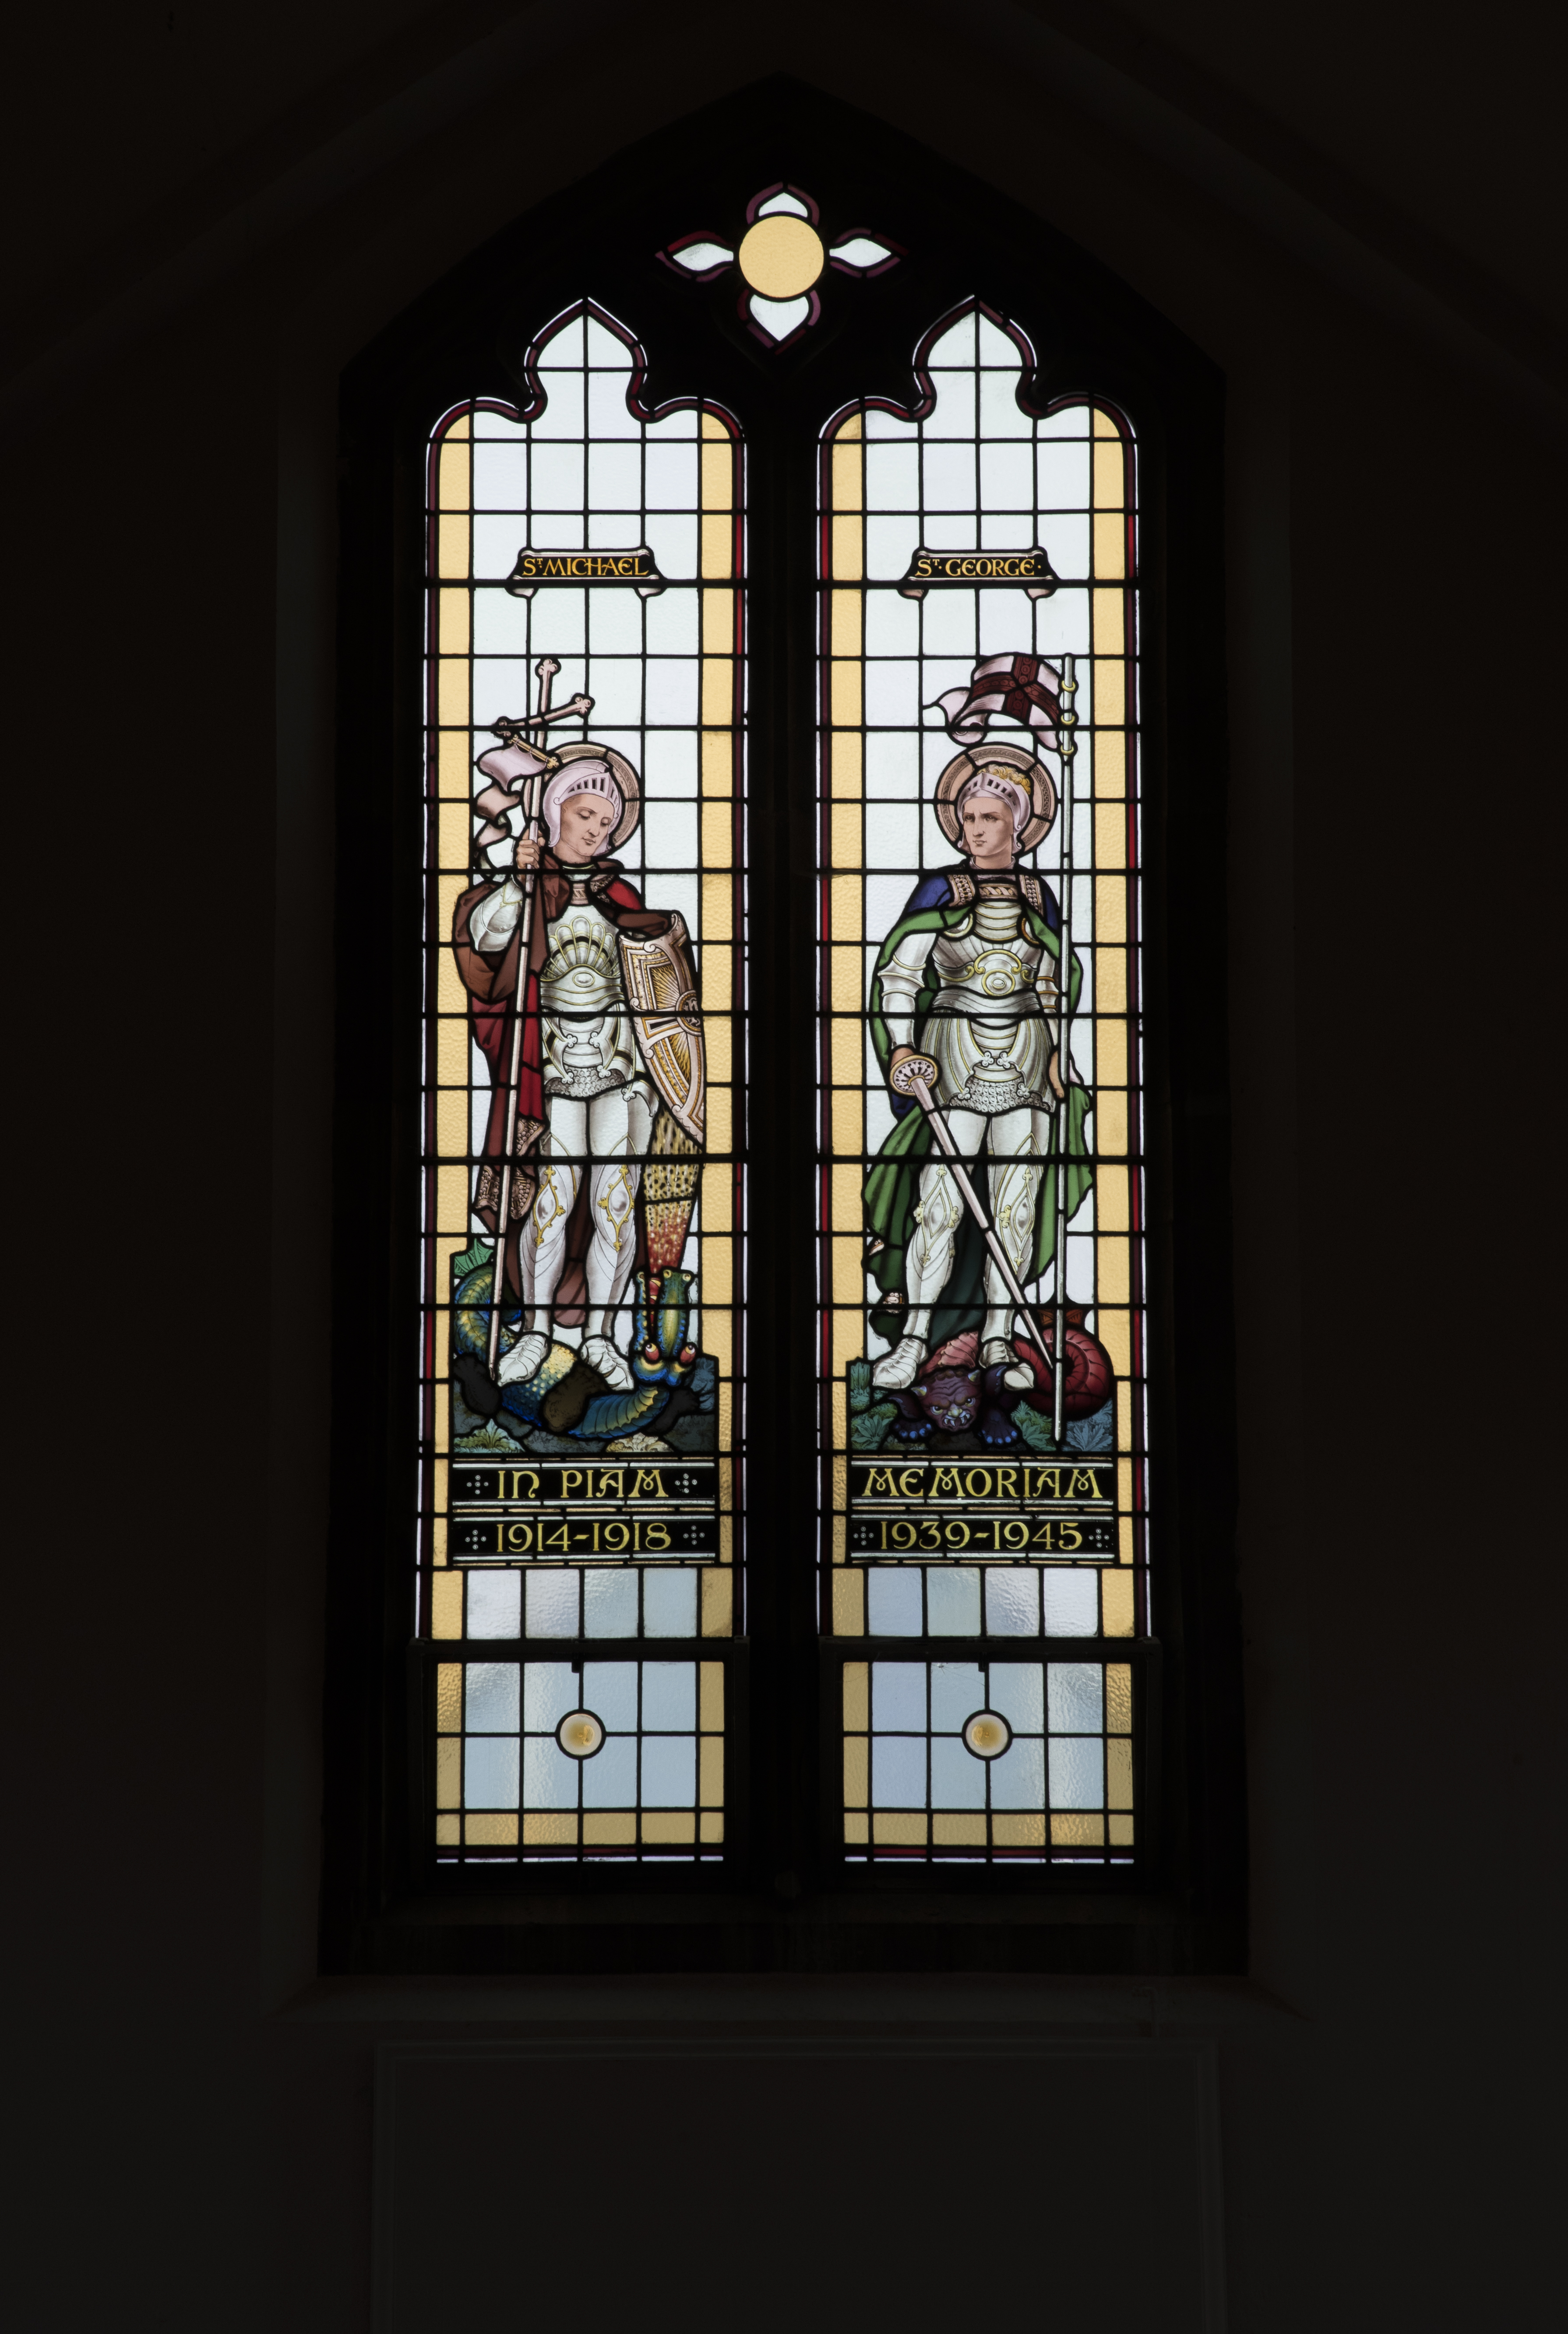 This stained glass window shows portraits of St George and St Michael, and was painted in commemoration of the lives lost in the First and Second World Wars